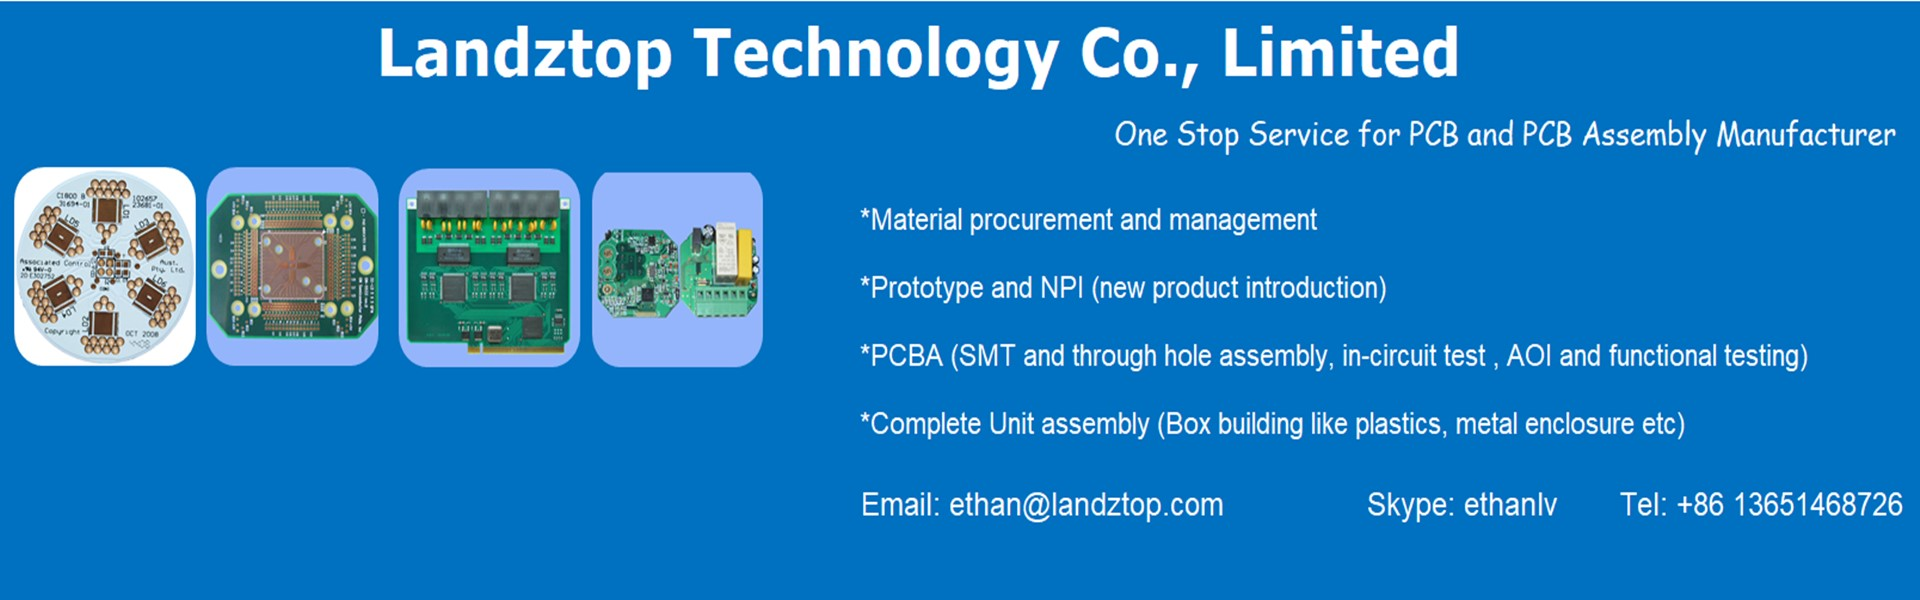 Landztop Technology Co., Limited